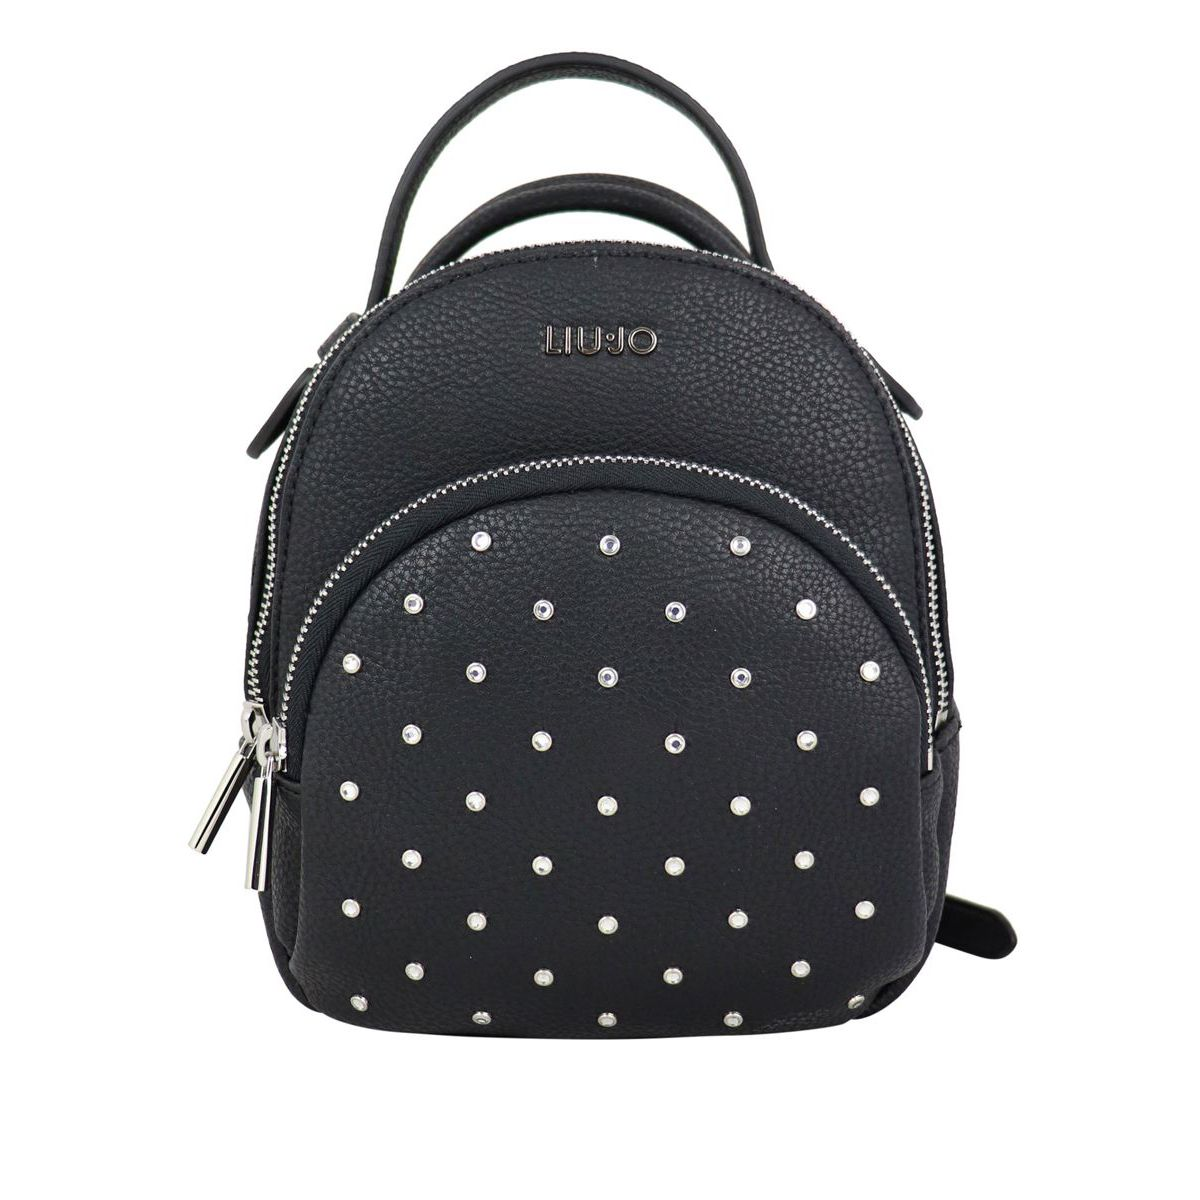 Faux leather backpack with rhinestones Black Liu Jo